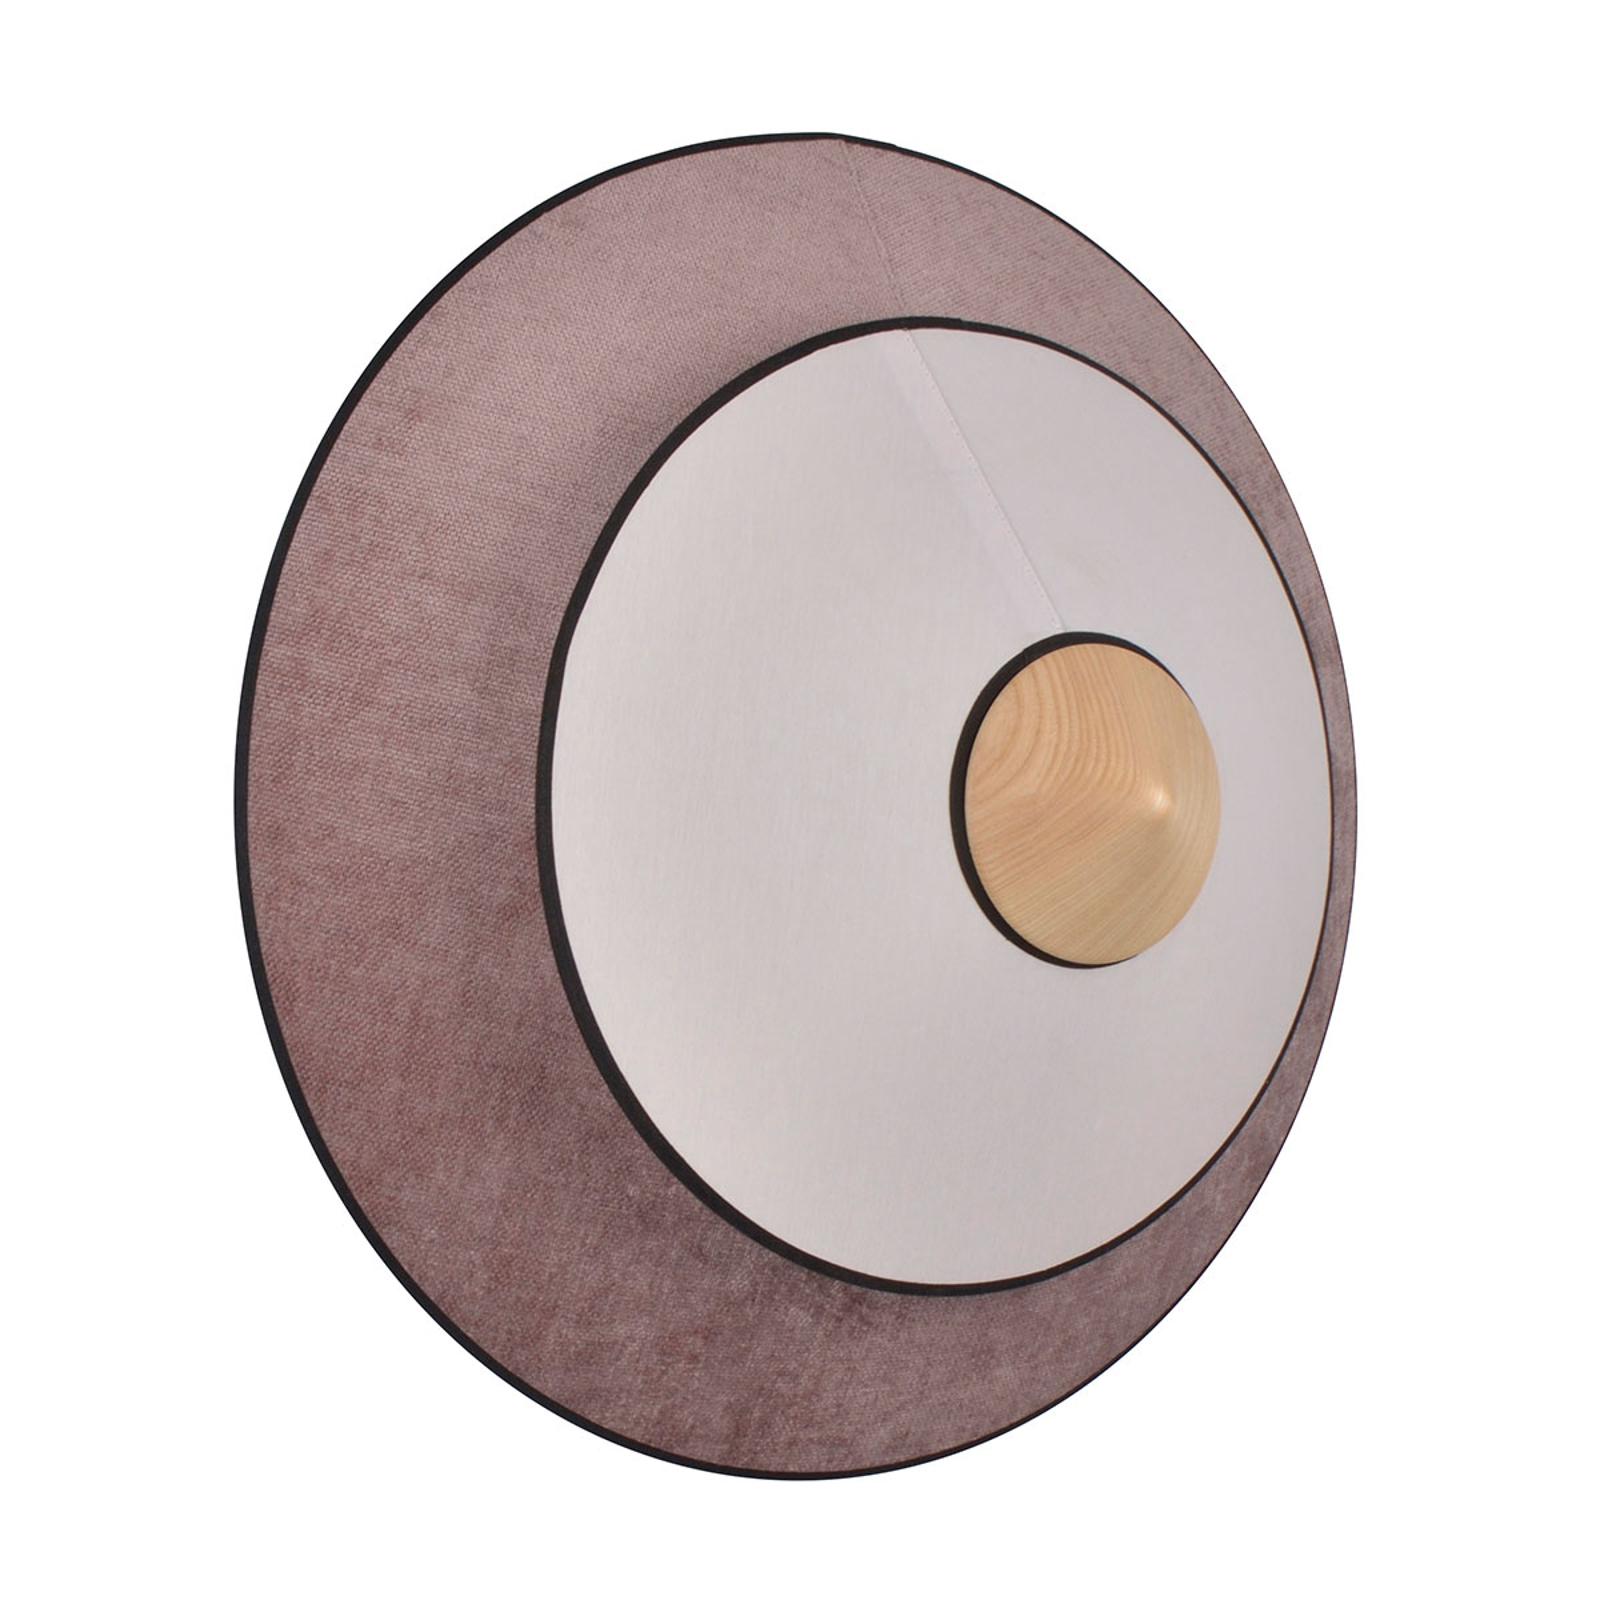 Forestier Cymbal S LED-væglampe, pudderrosa